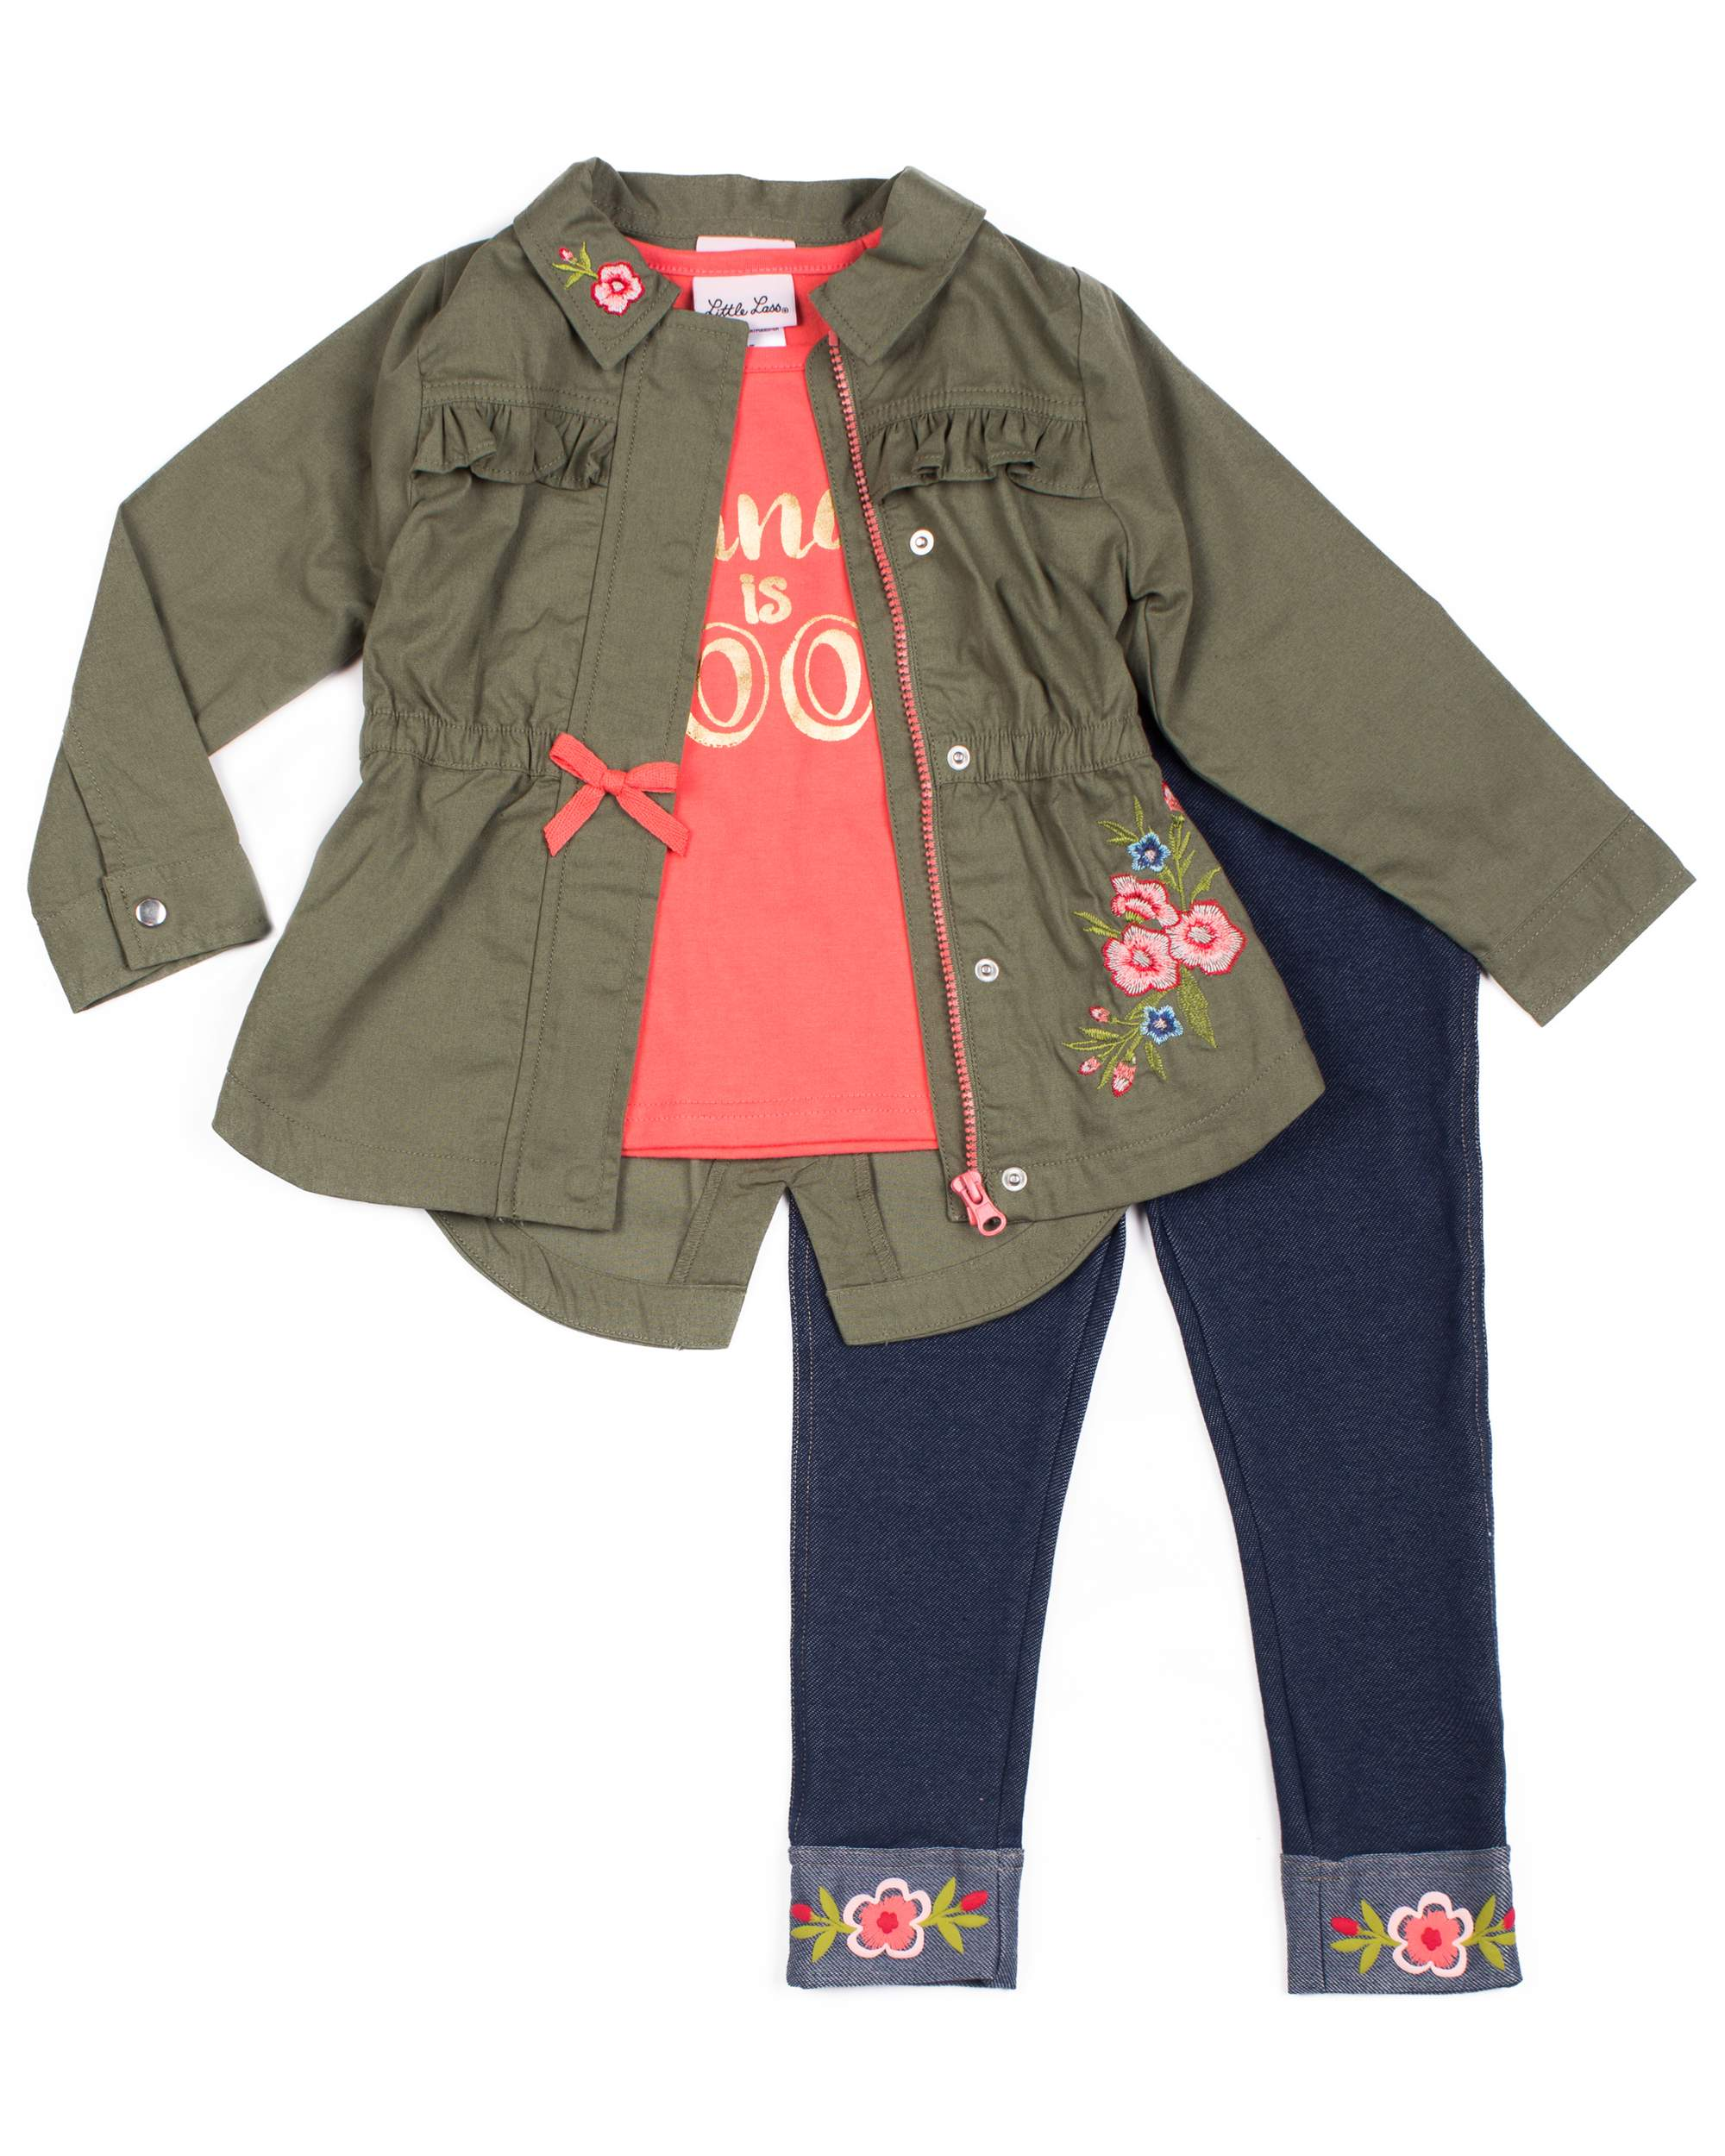 Embroidered Anorak Jacket, Graphic Tee and Knit Denim Legging, 3-Piece Outfit Set (Little Girls)